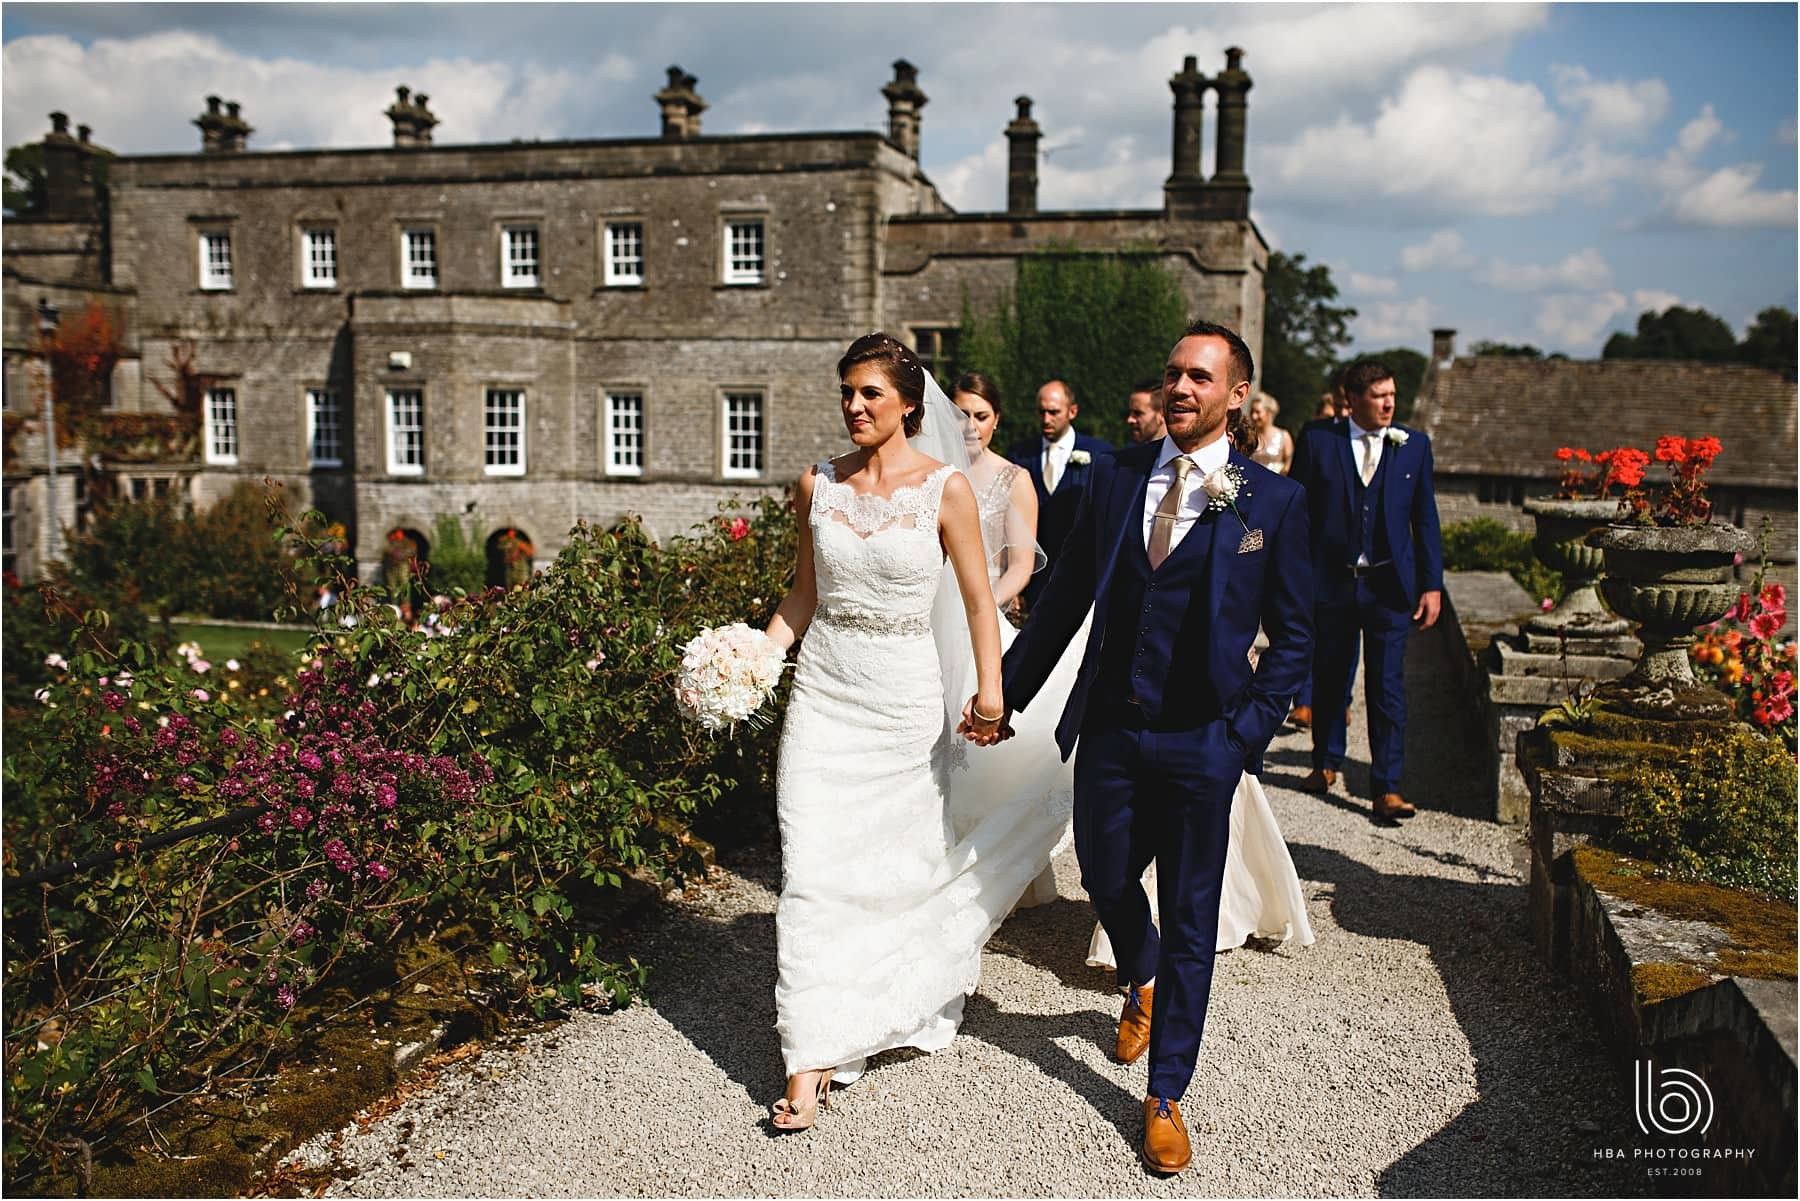 the bride & groom walking at Tissington Hall